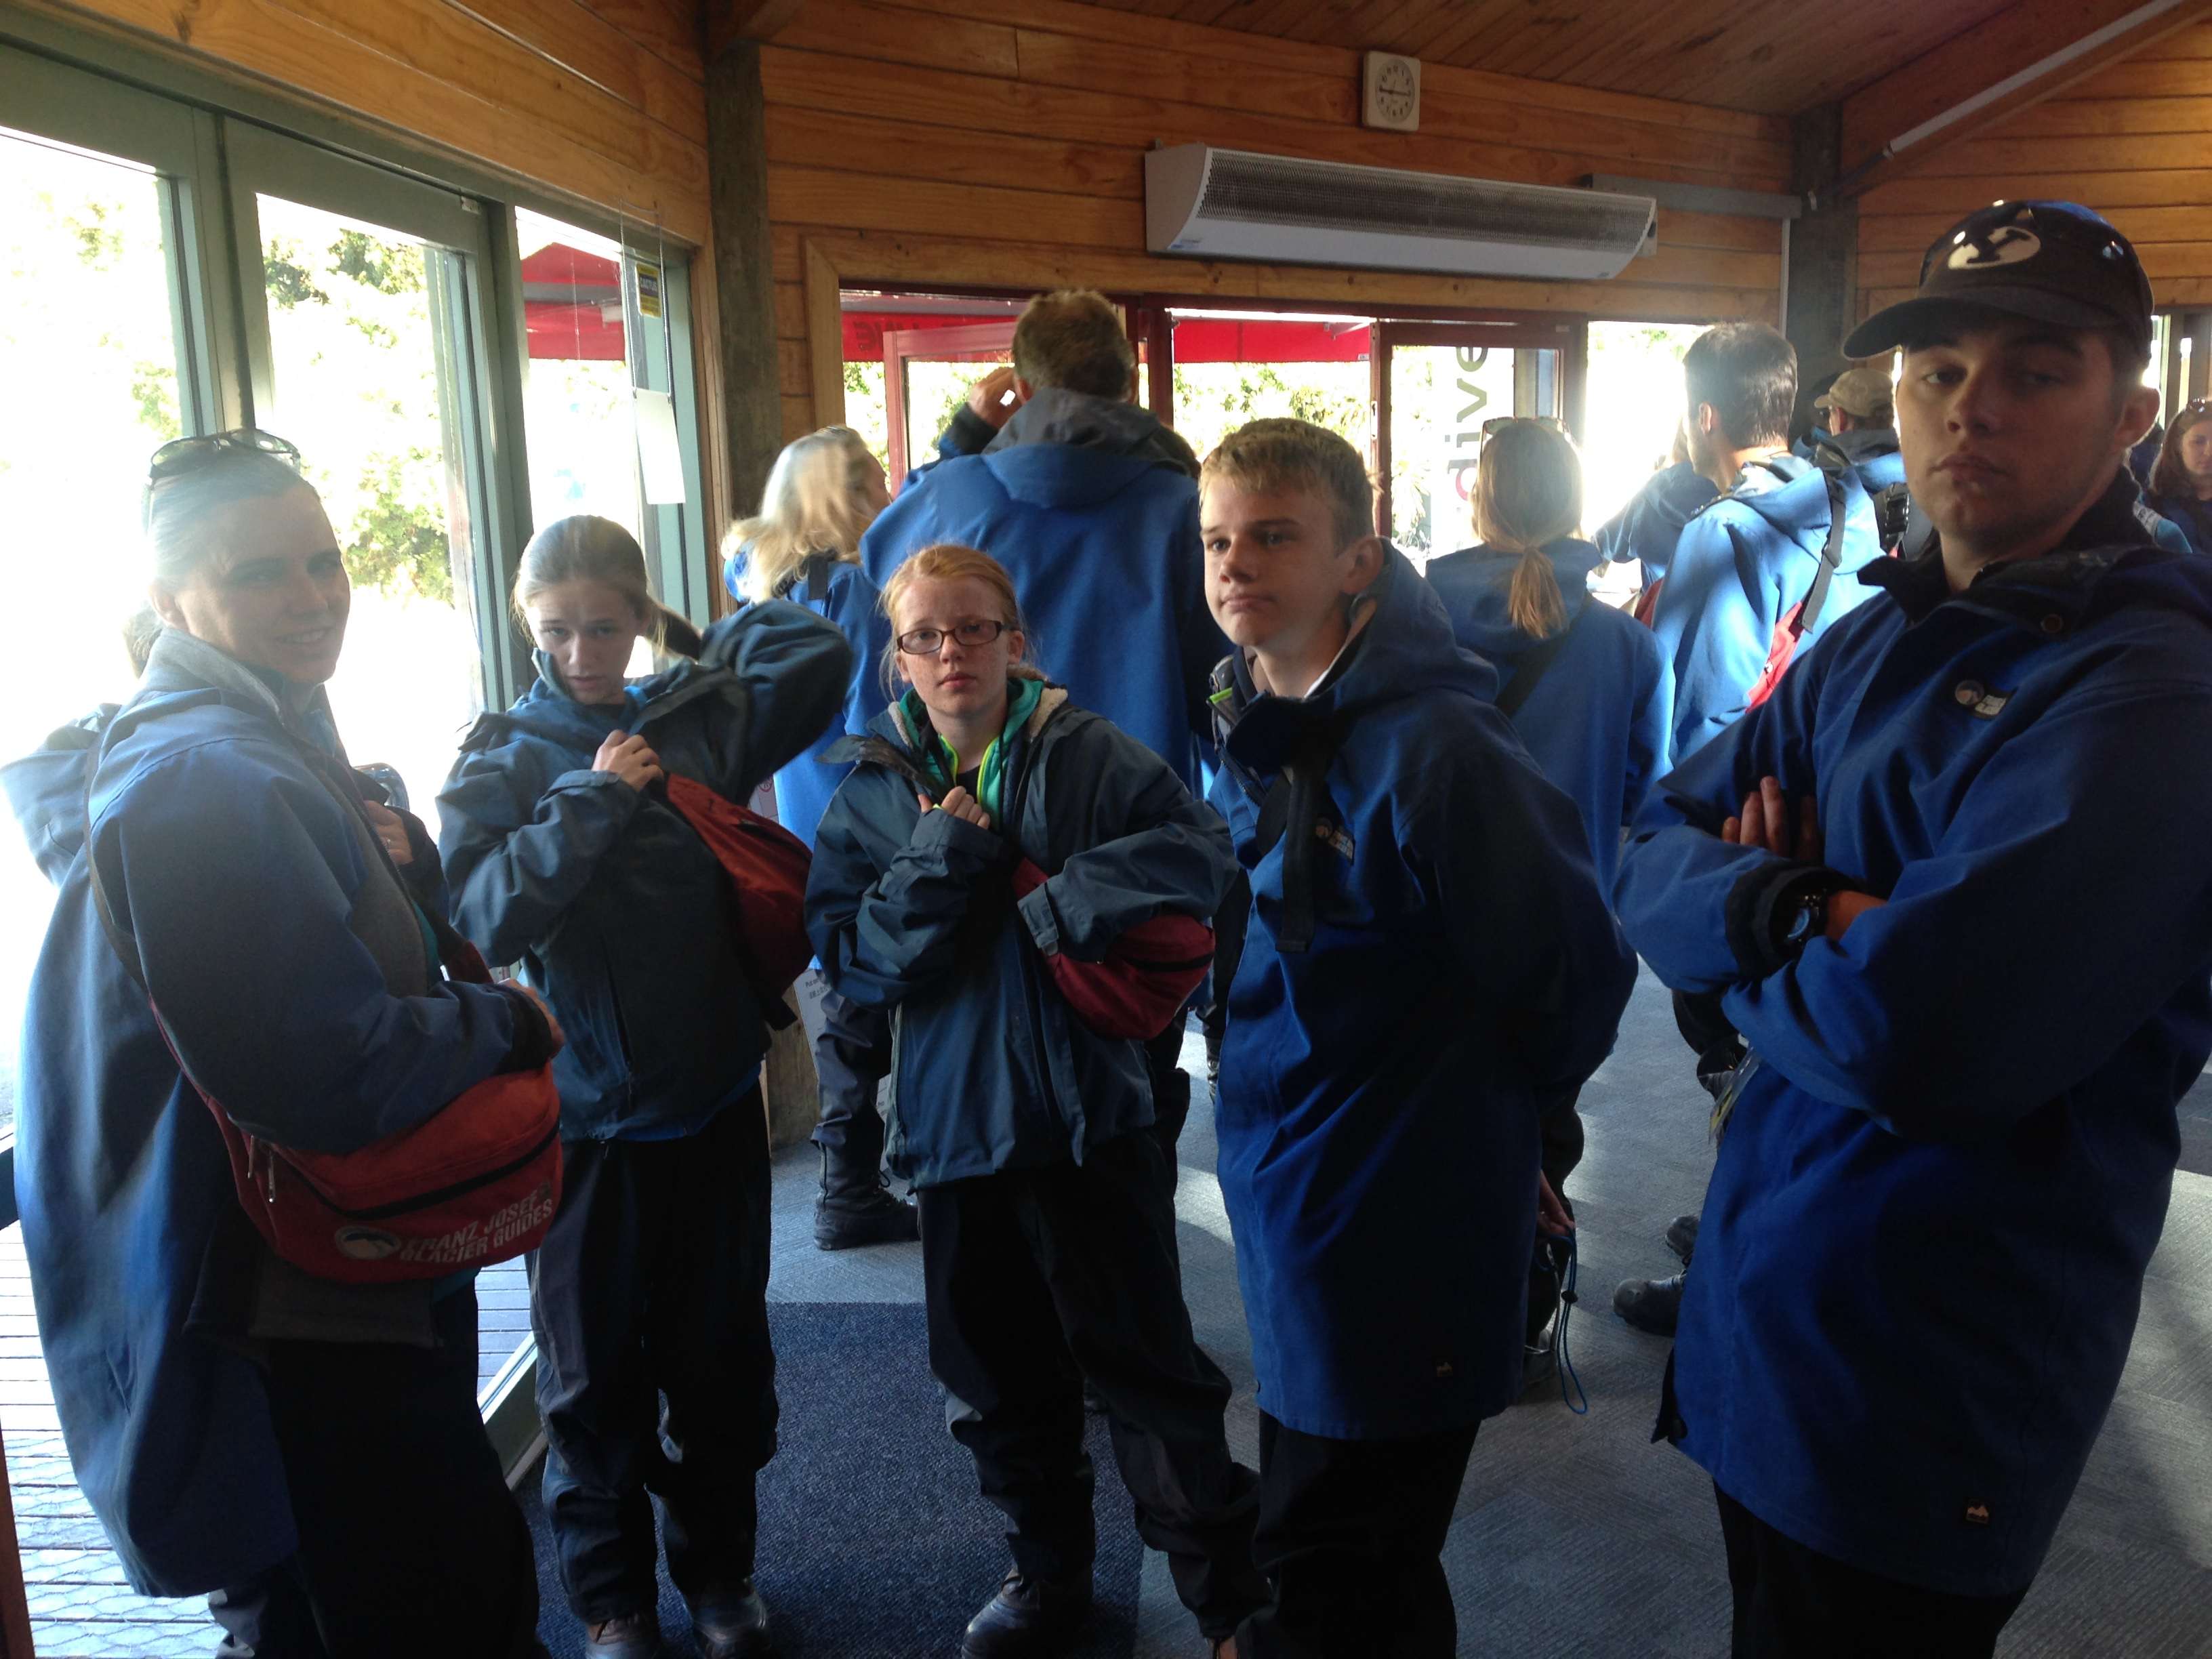 Craze family in glacier gear prior to walking to the heliport in Franz Josef, New Zealand.